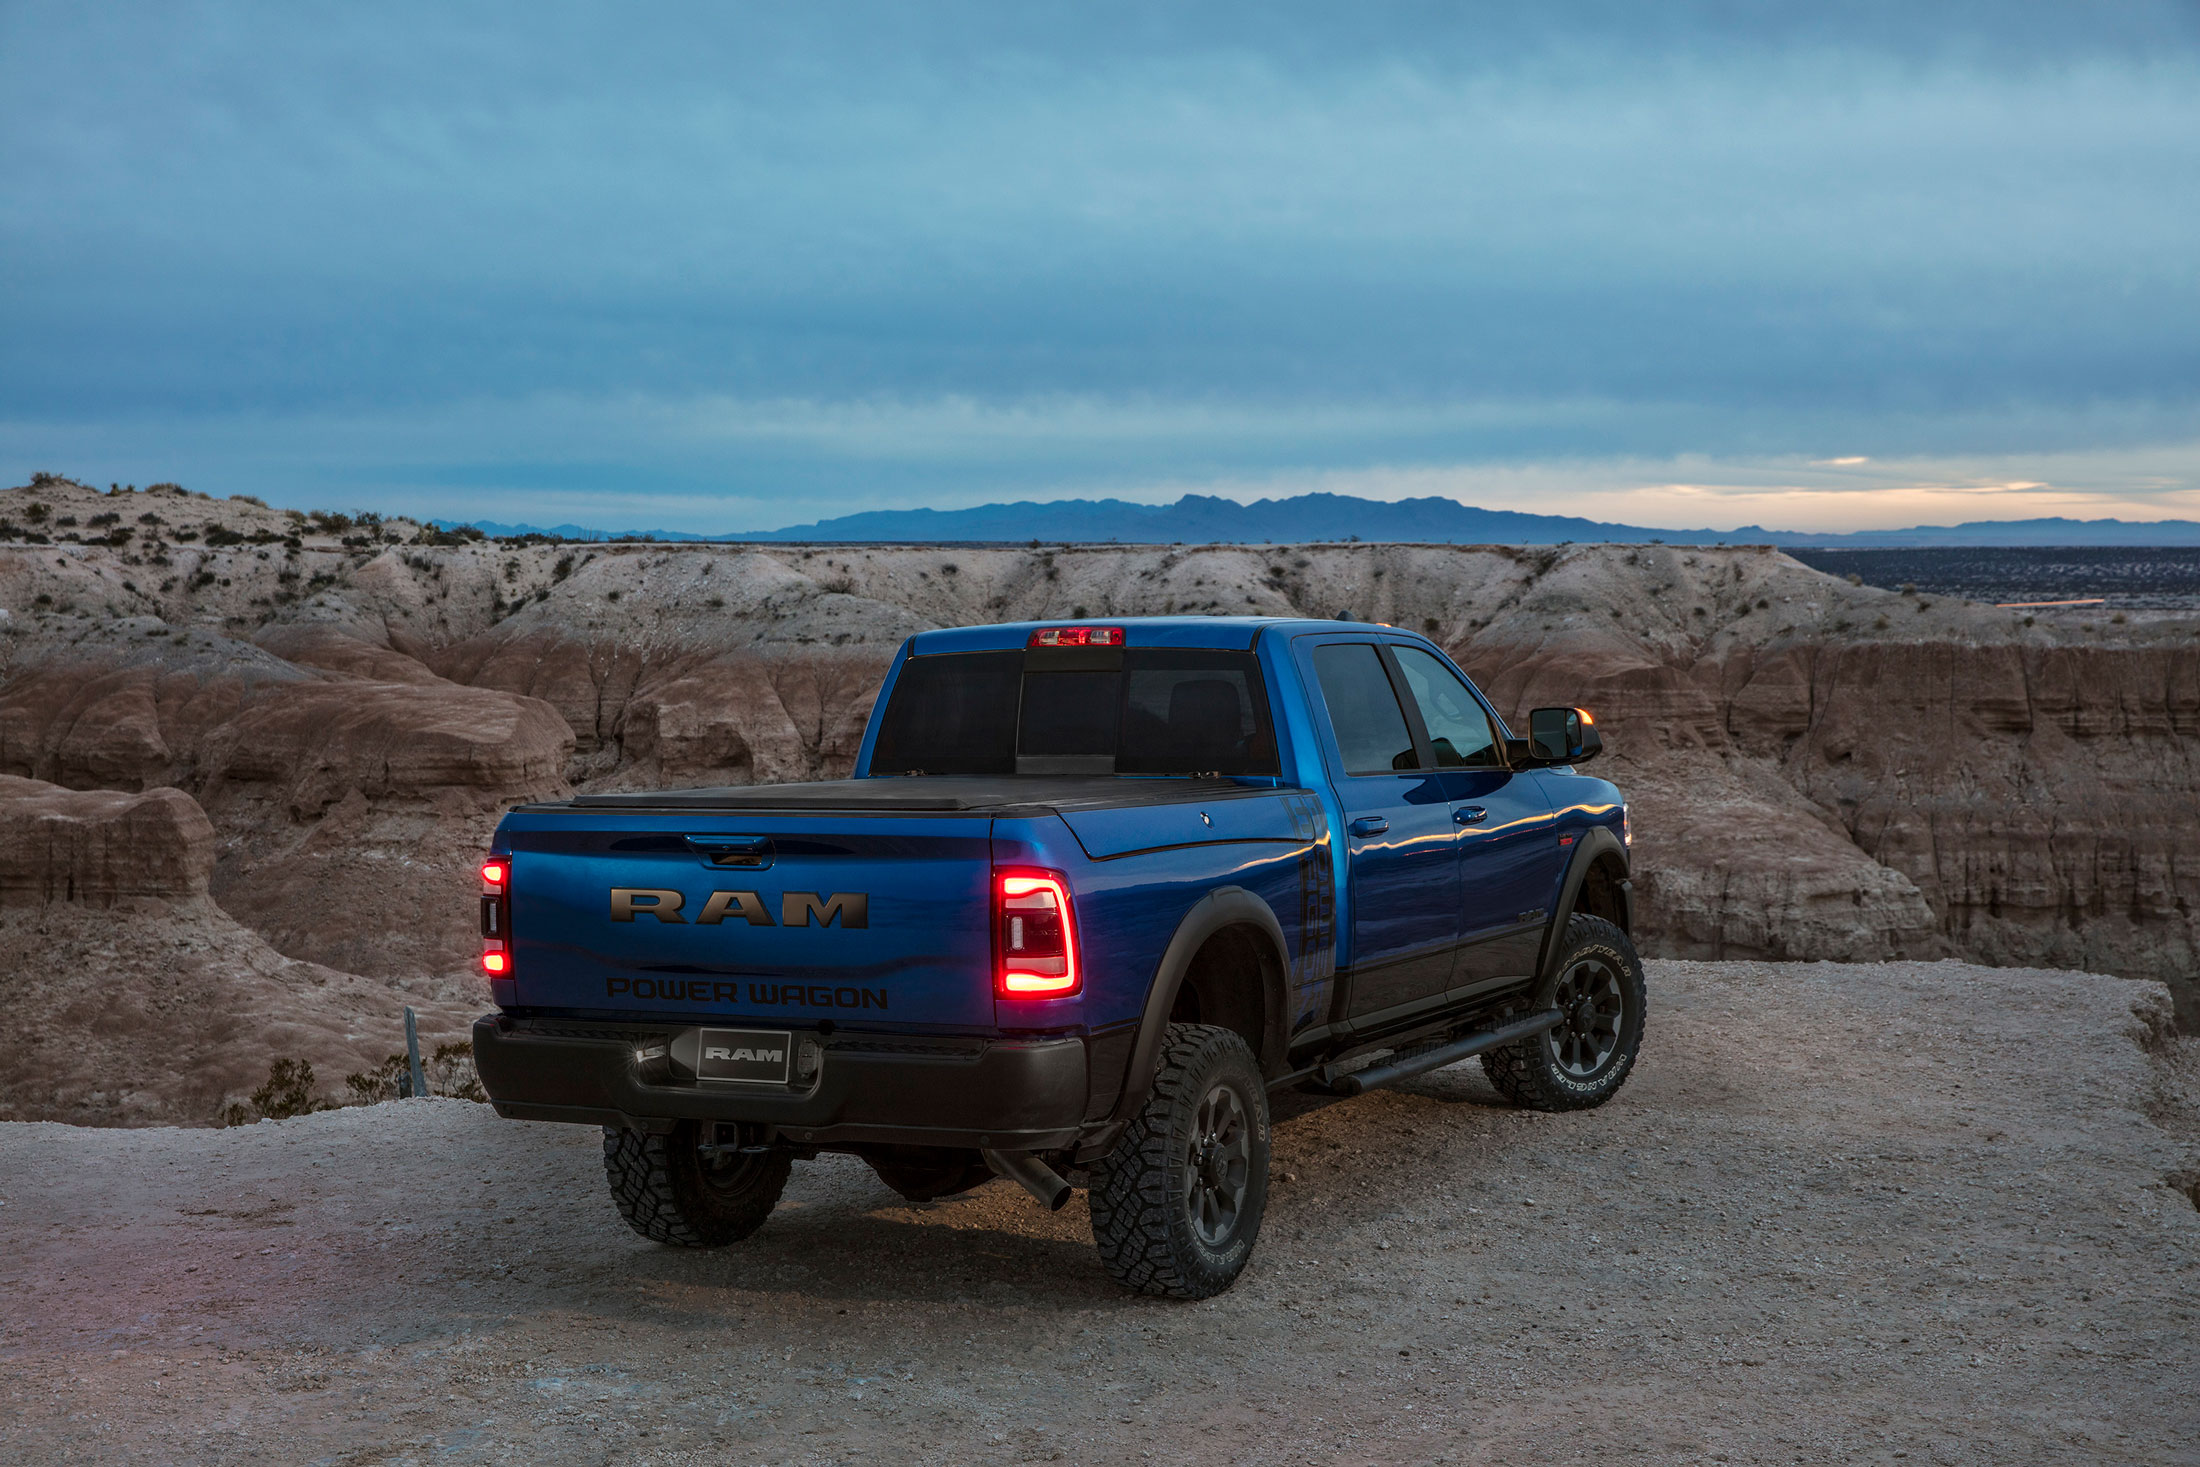 2019 RAM Power Wagon rear 3/4